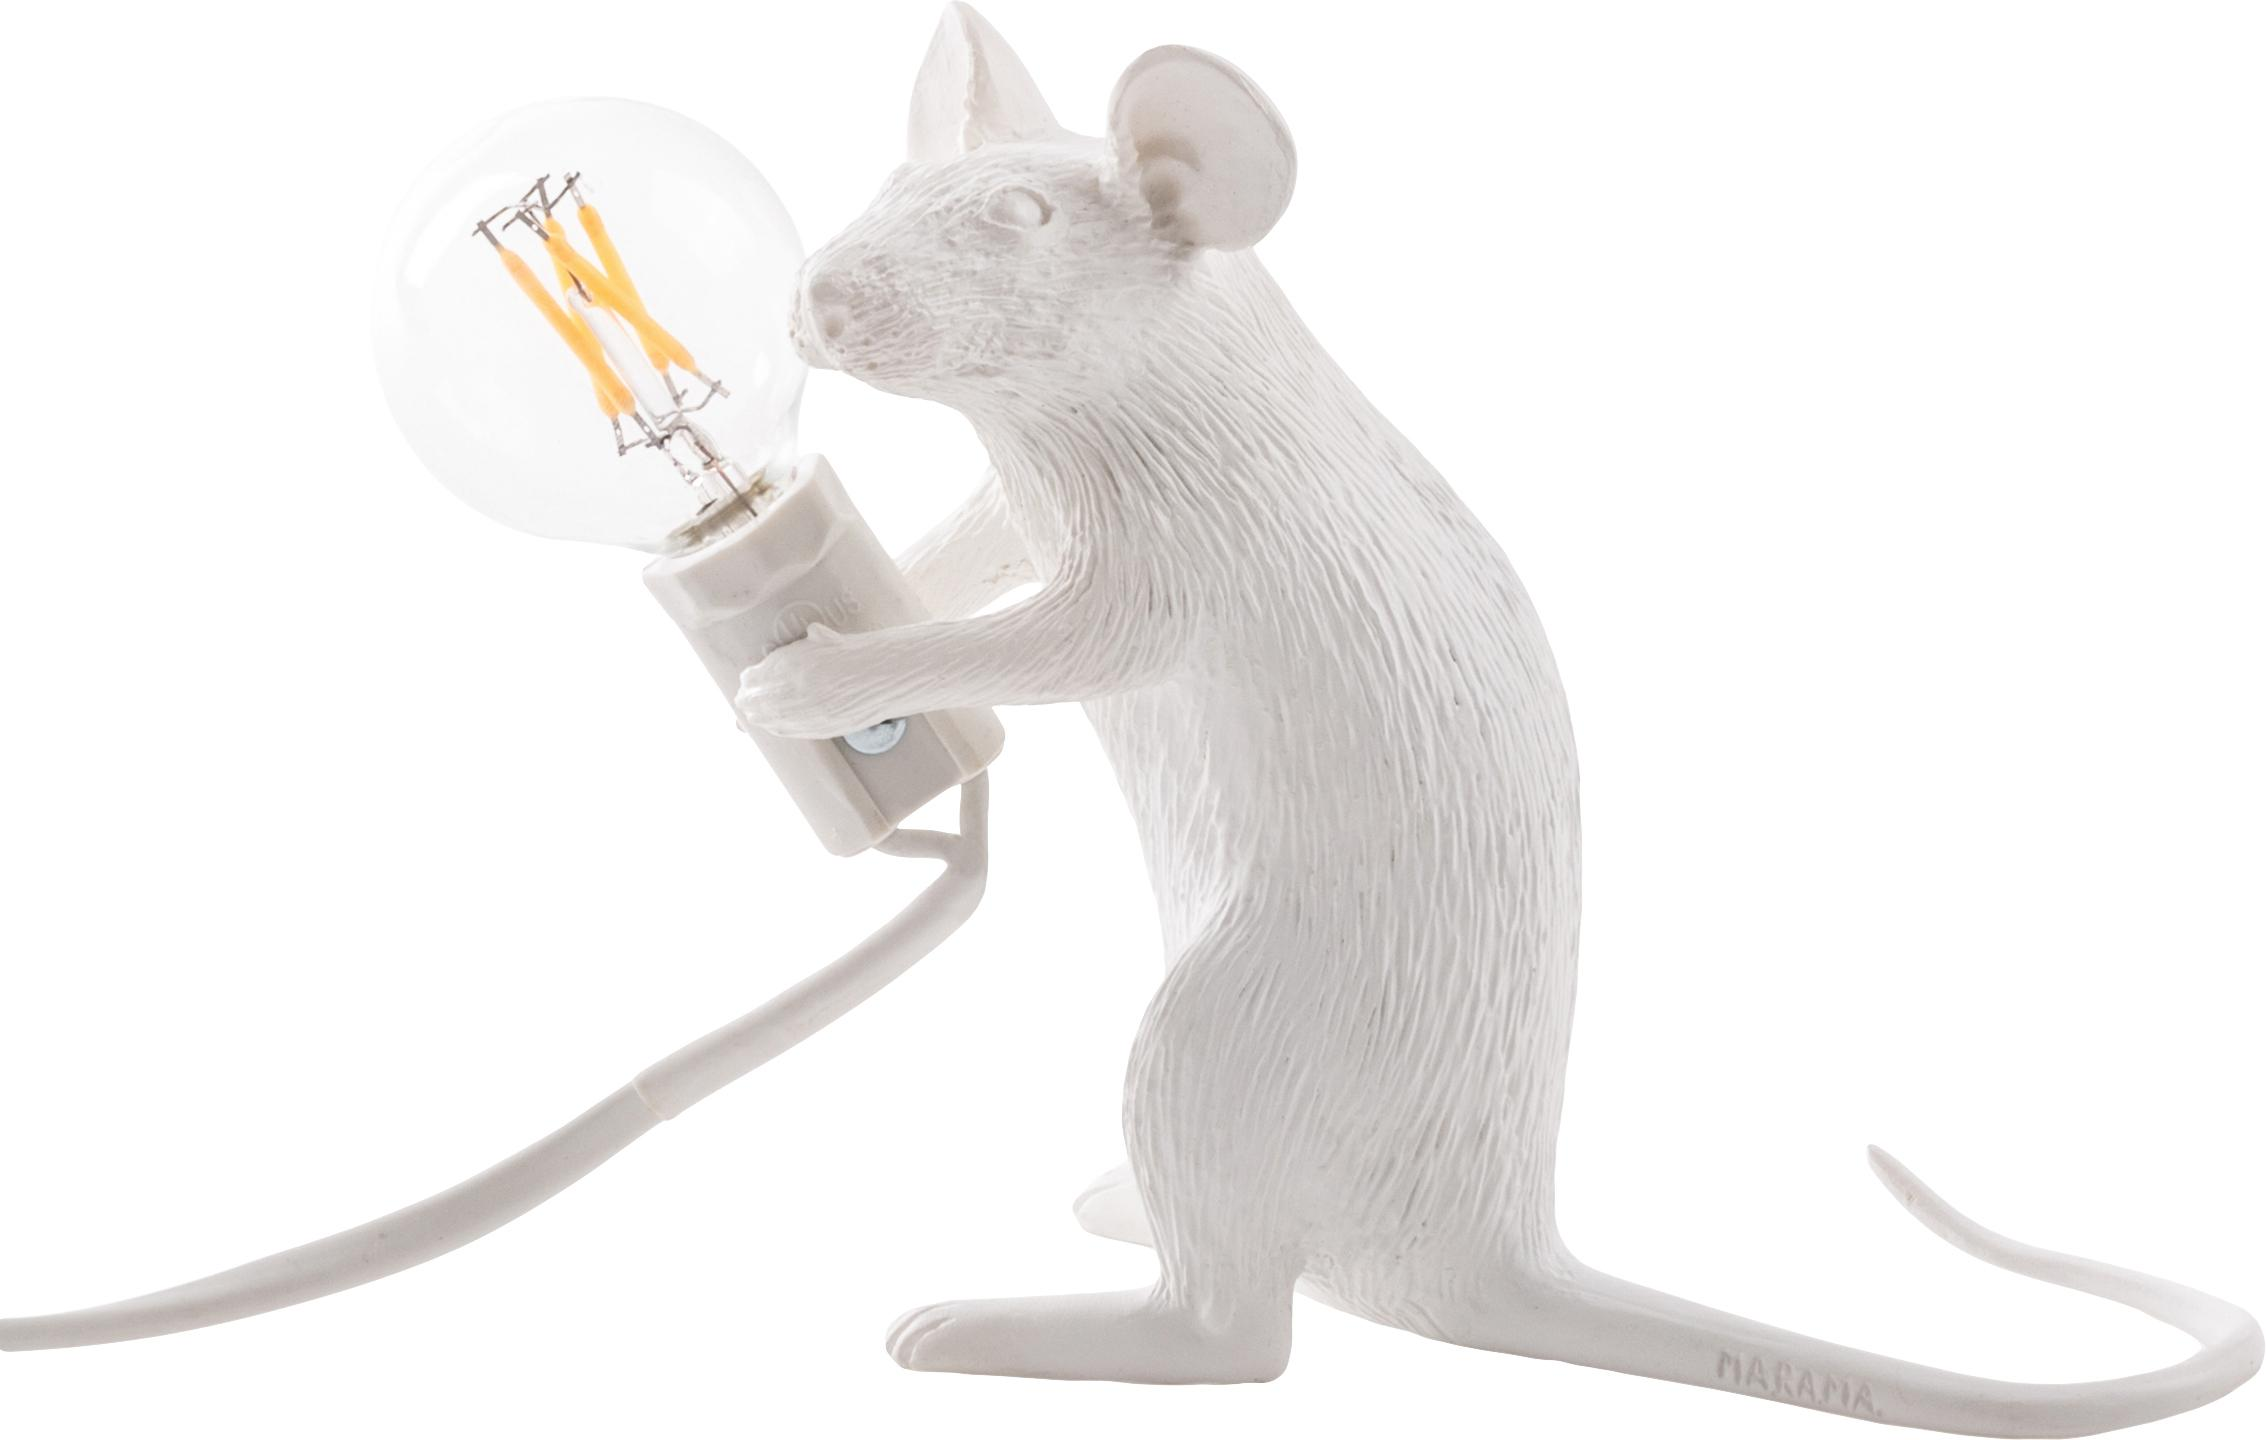 Design-Tischlampe Mouse, Weiss, 5 x 13 cm